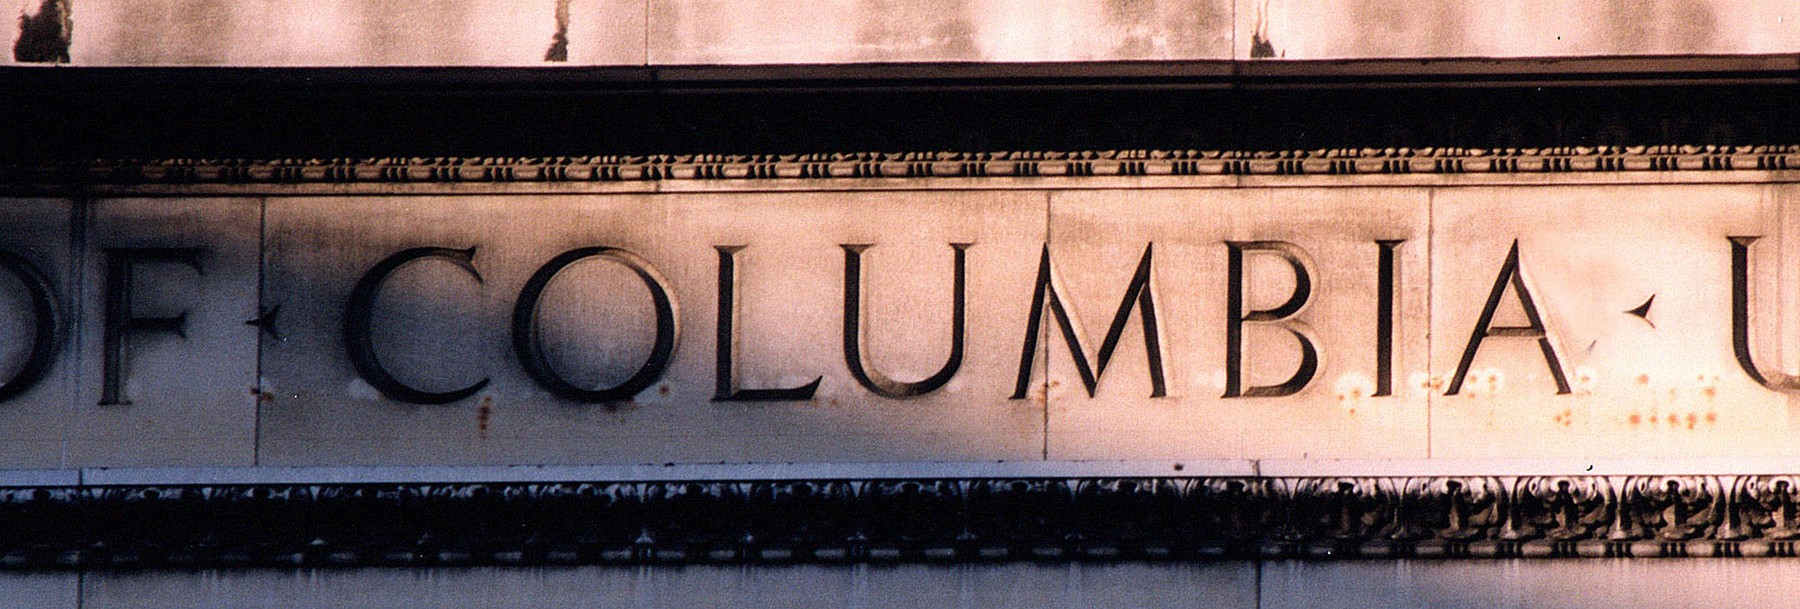 "Low Library facade, up close, displaying the word ""Columbia."""